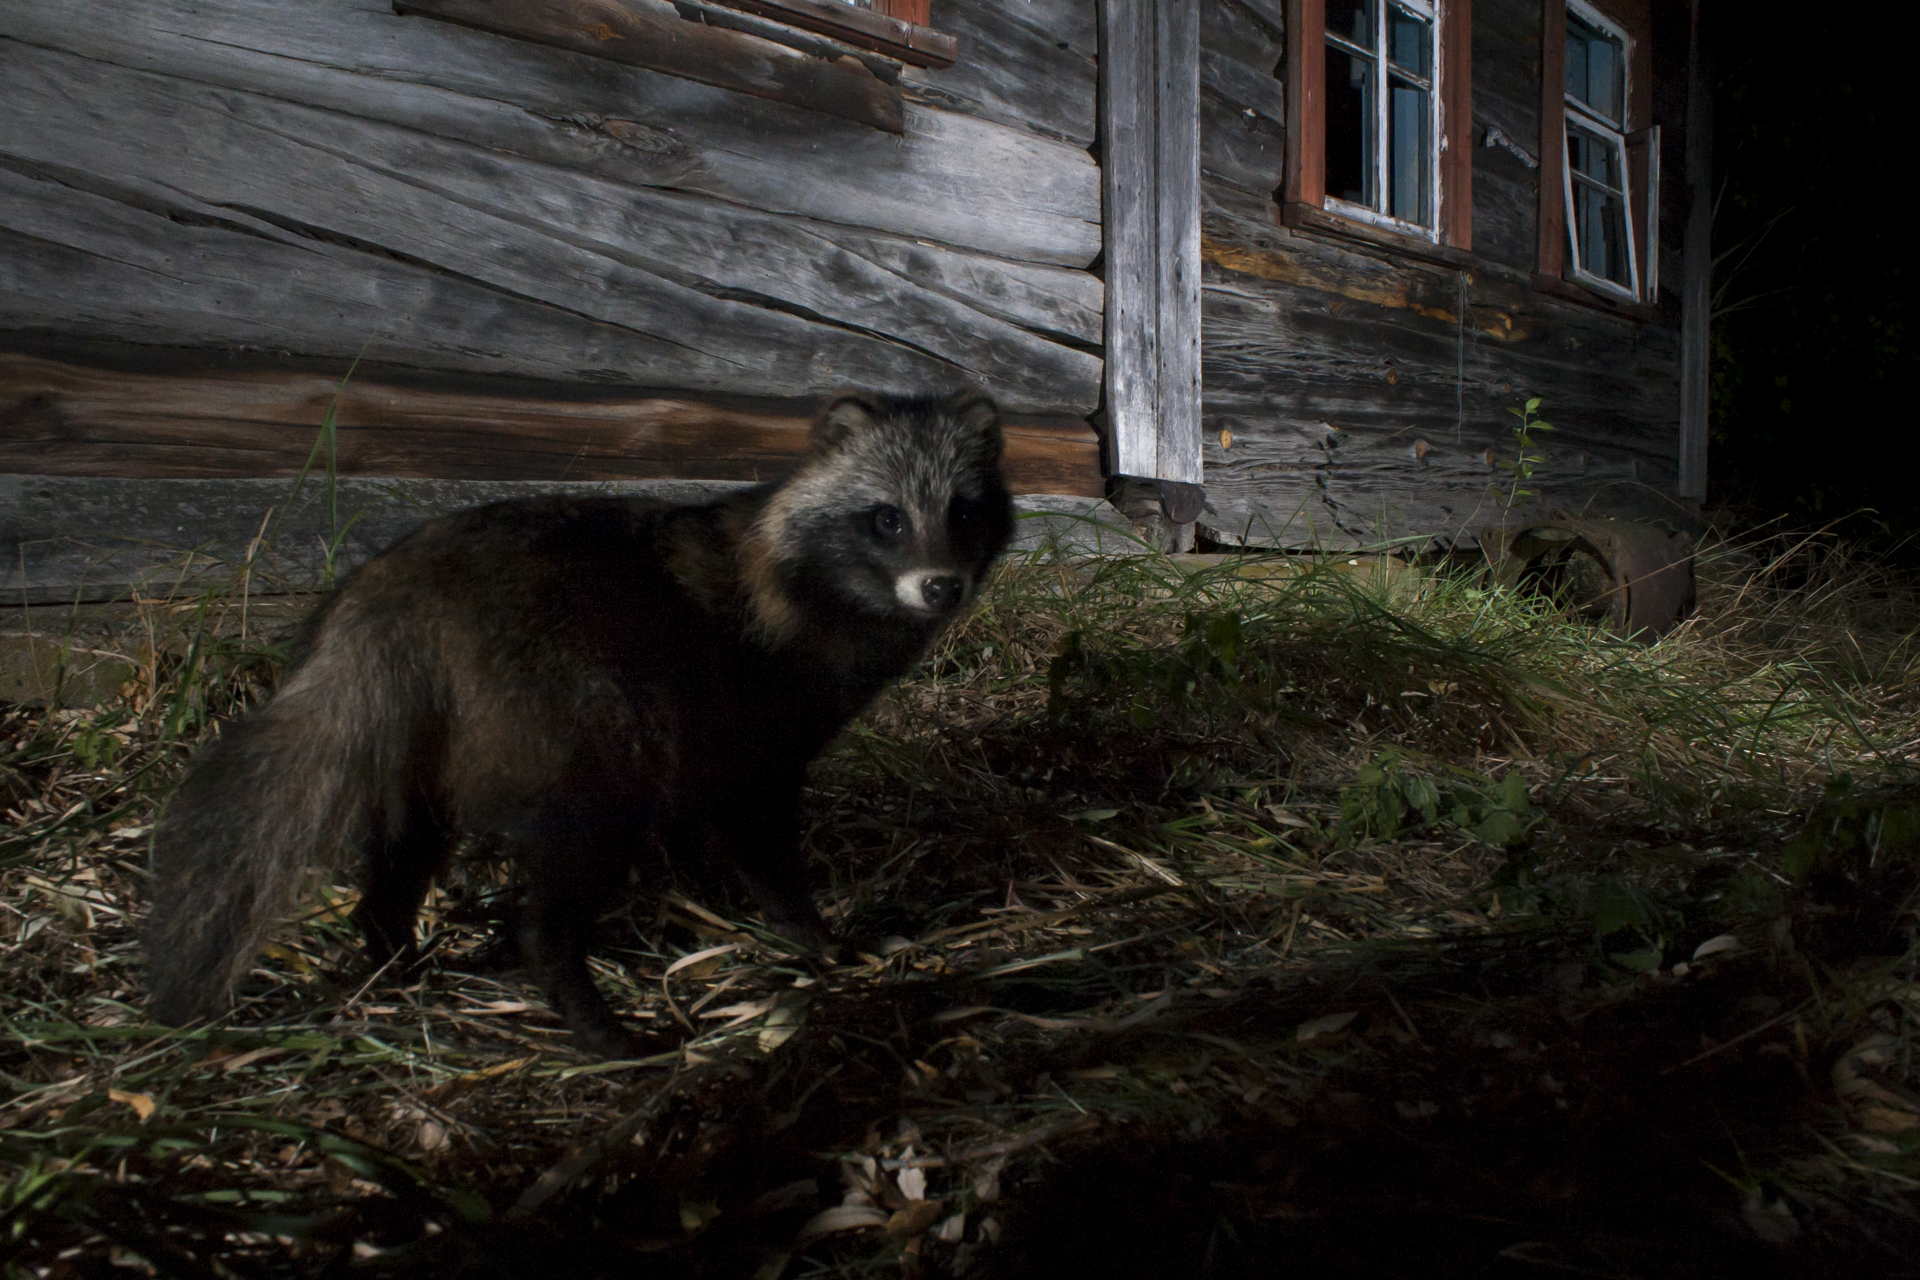 Racoon dogs thrive, escapes from fur farms they can be found across eastern Europe.